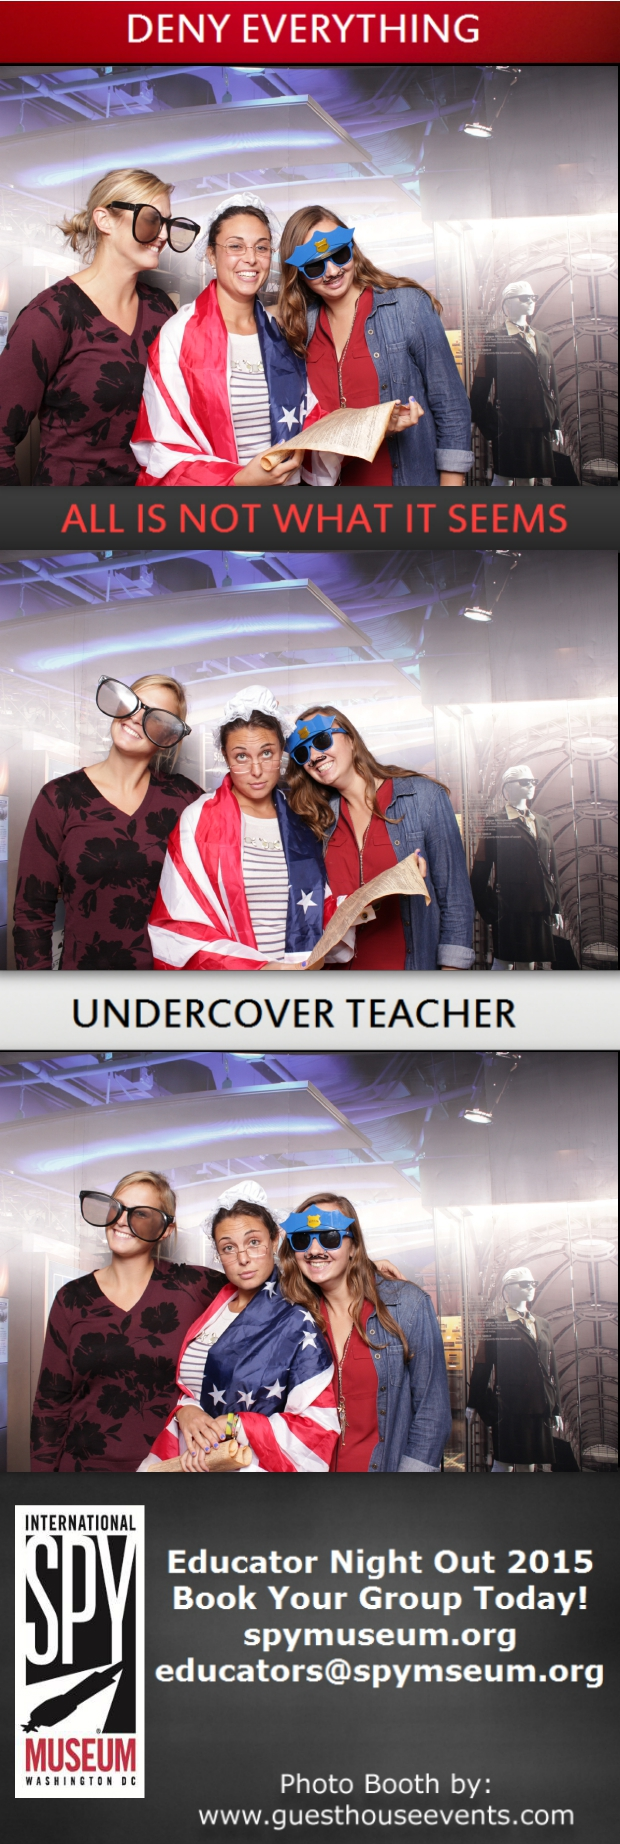 Guest House Events Photo Booth Spy Museum Educator Night Out (39).jpg